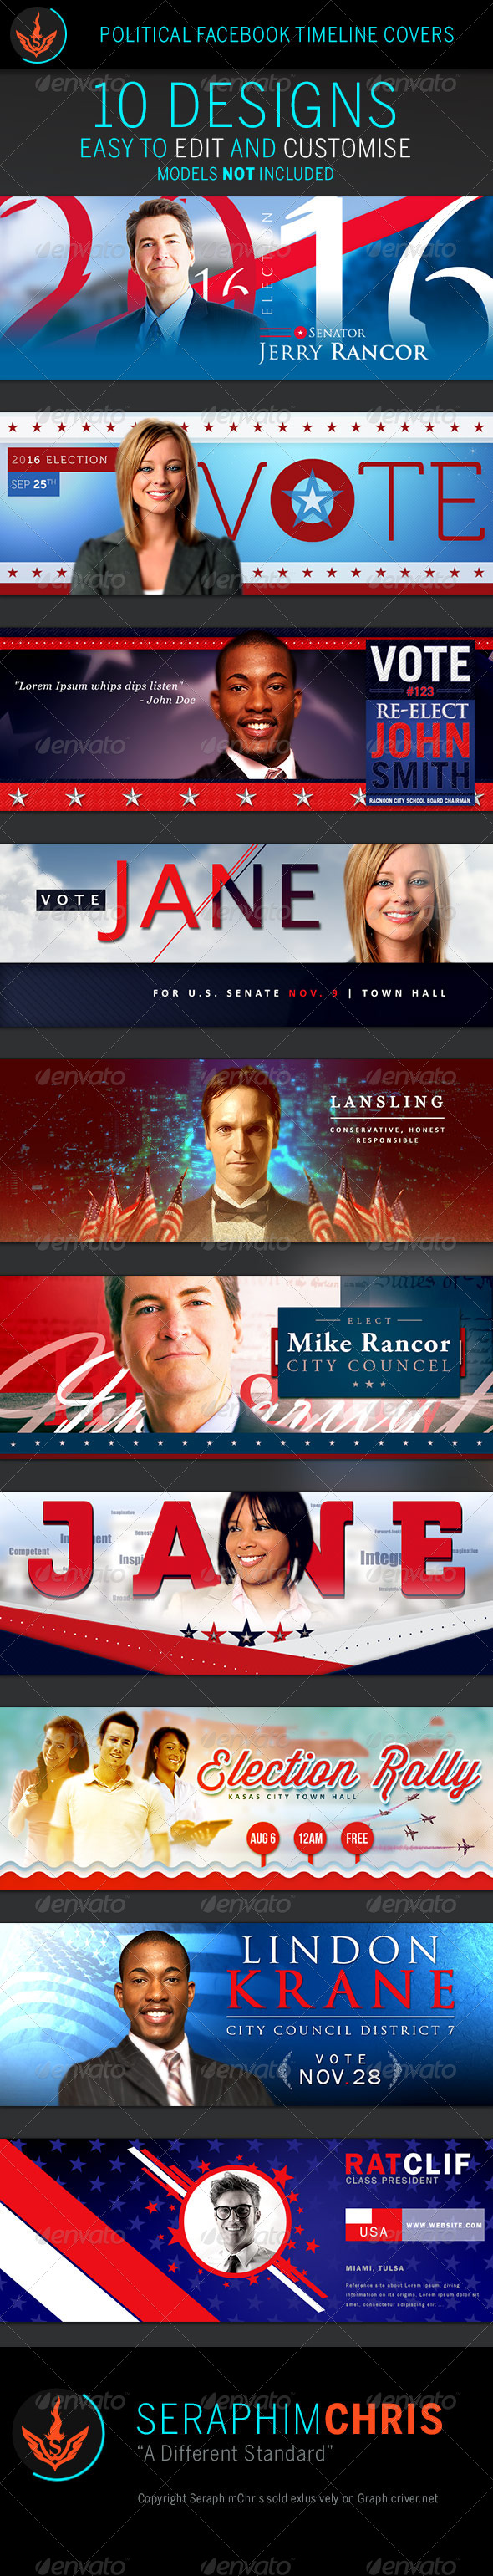 GraphicRiver Political Facebook Timeline Cover Templates 7950106